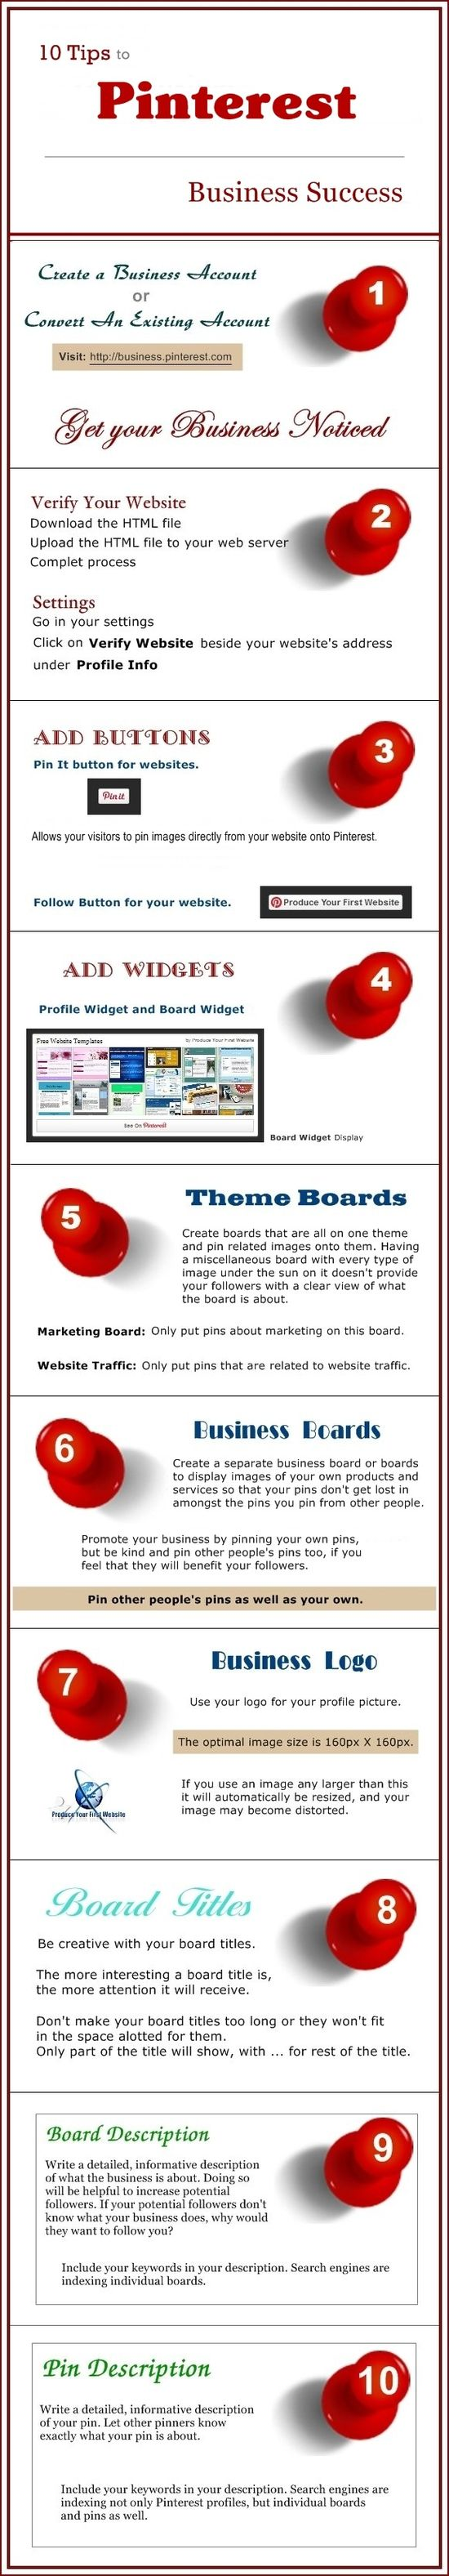 10 Tips to Pinterest Business Success – Infographics